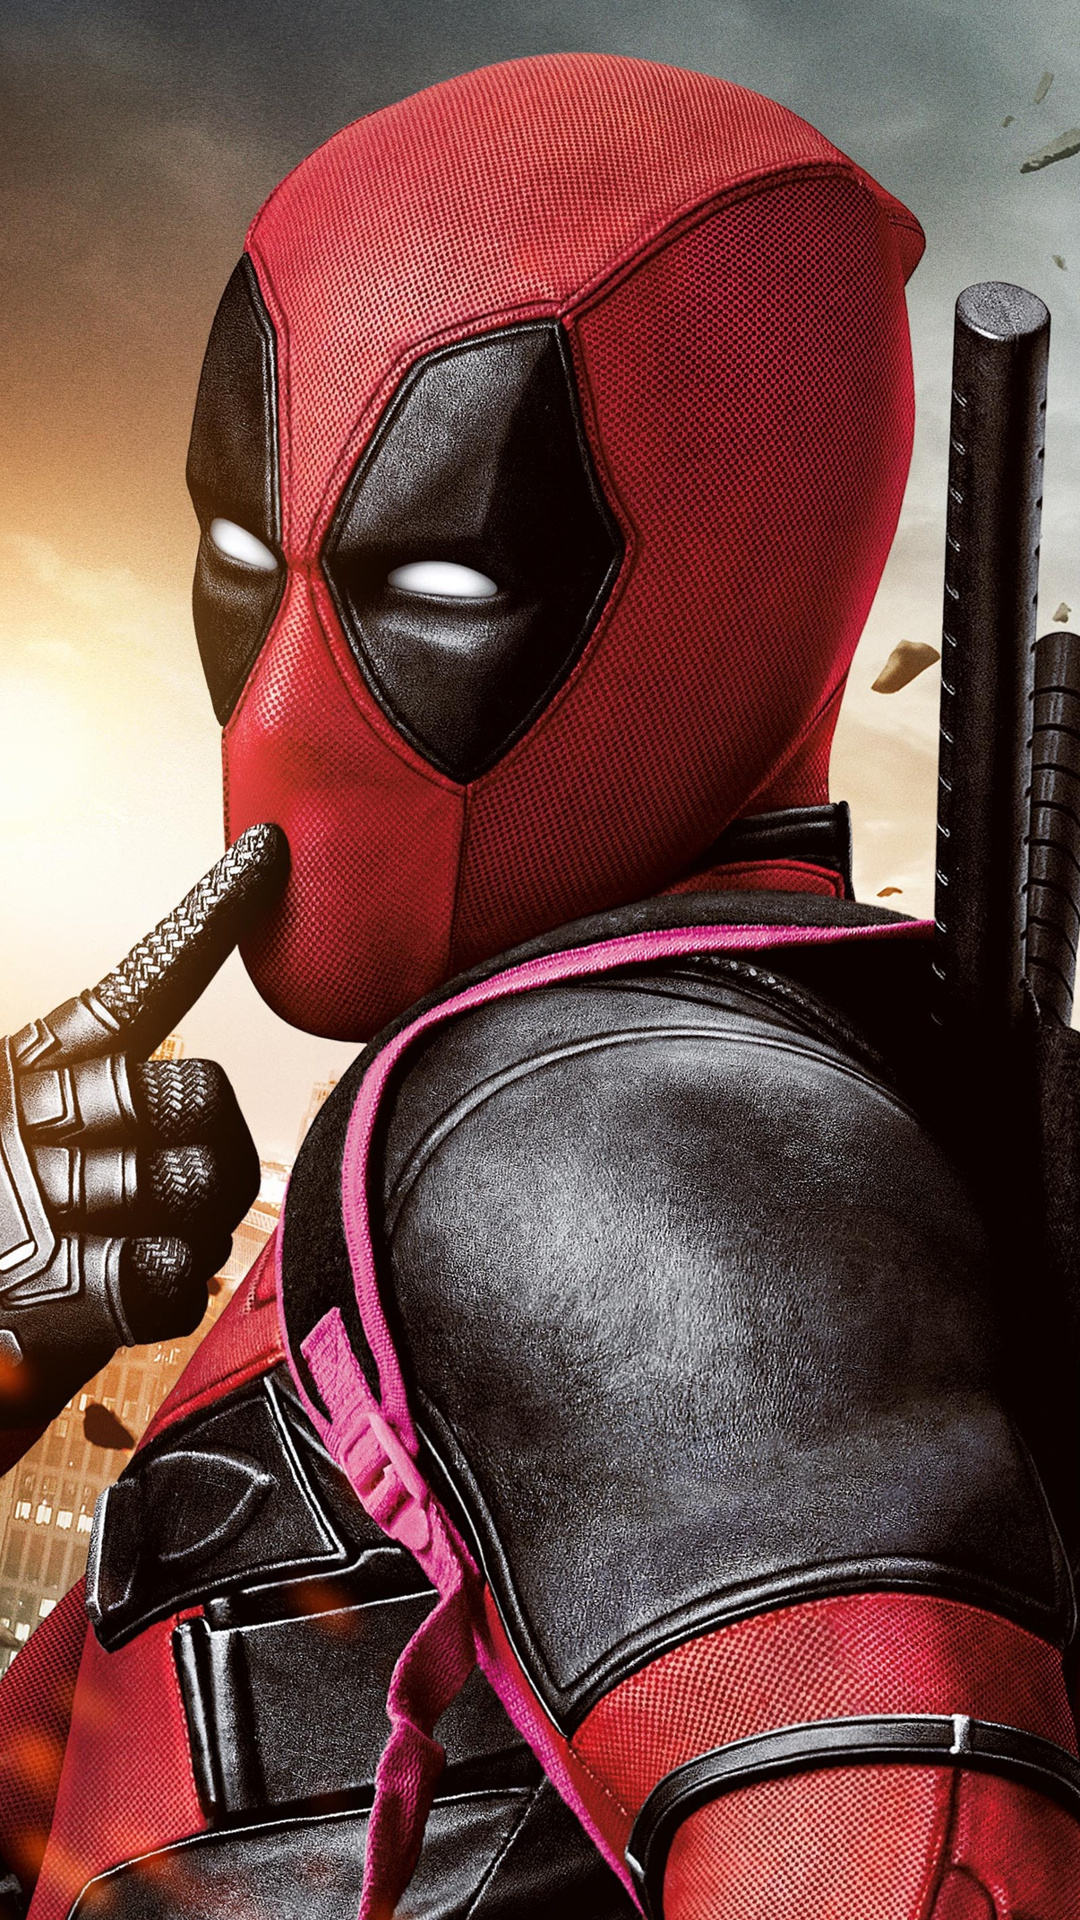 deadpool wallpaper for iphone content and story conflicting views 13942